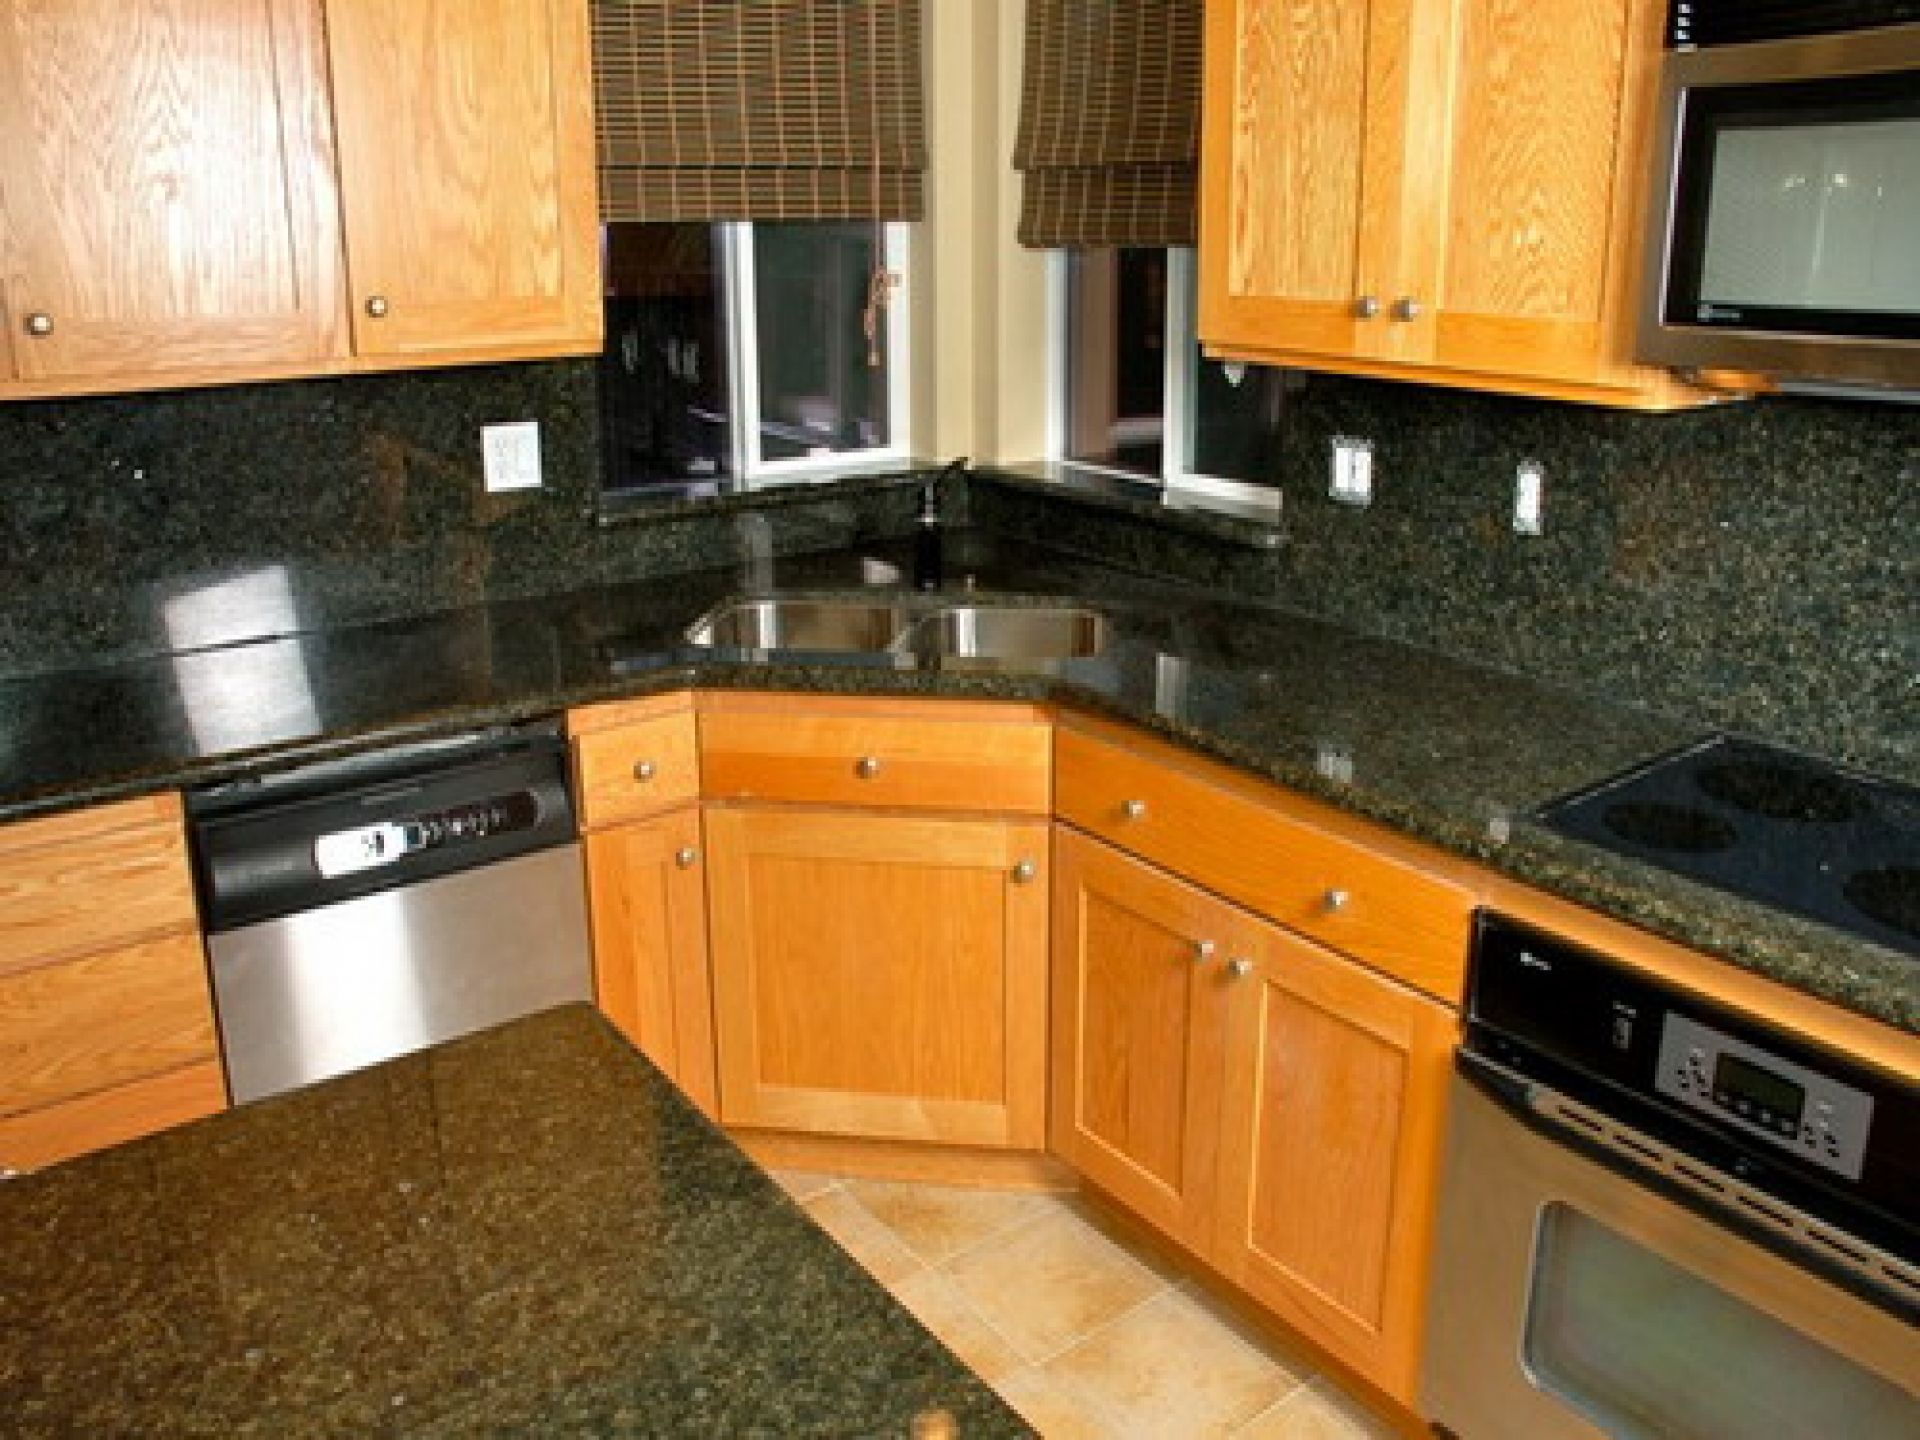 kitchen kitchen sink cabinets Fashionable Corner Kitchen Sink With Unstained Oak Kitchen Cabinet With Dark Granite Countertop As Well As Grey Wall Tiles Backsplash And Chrome Modern